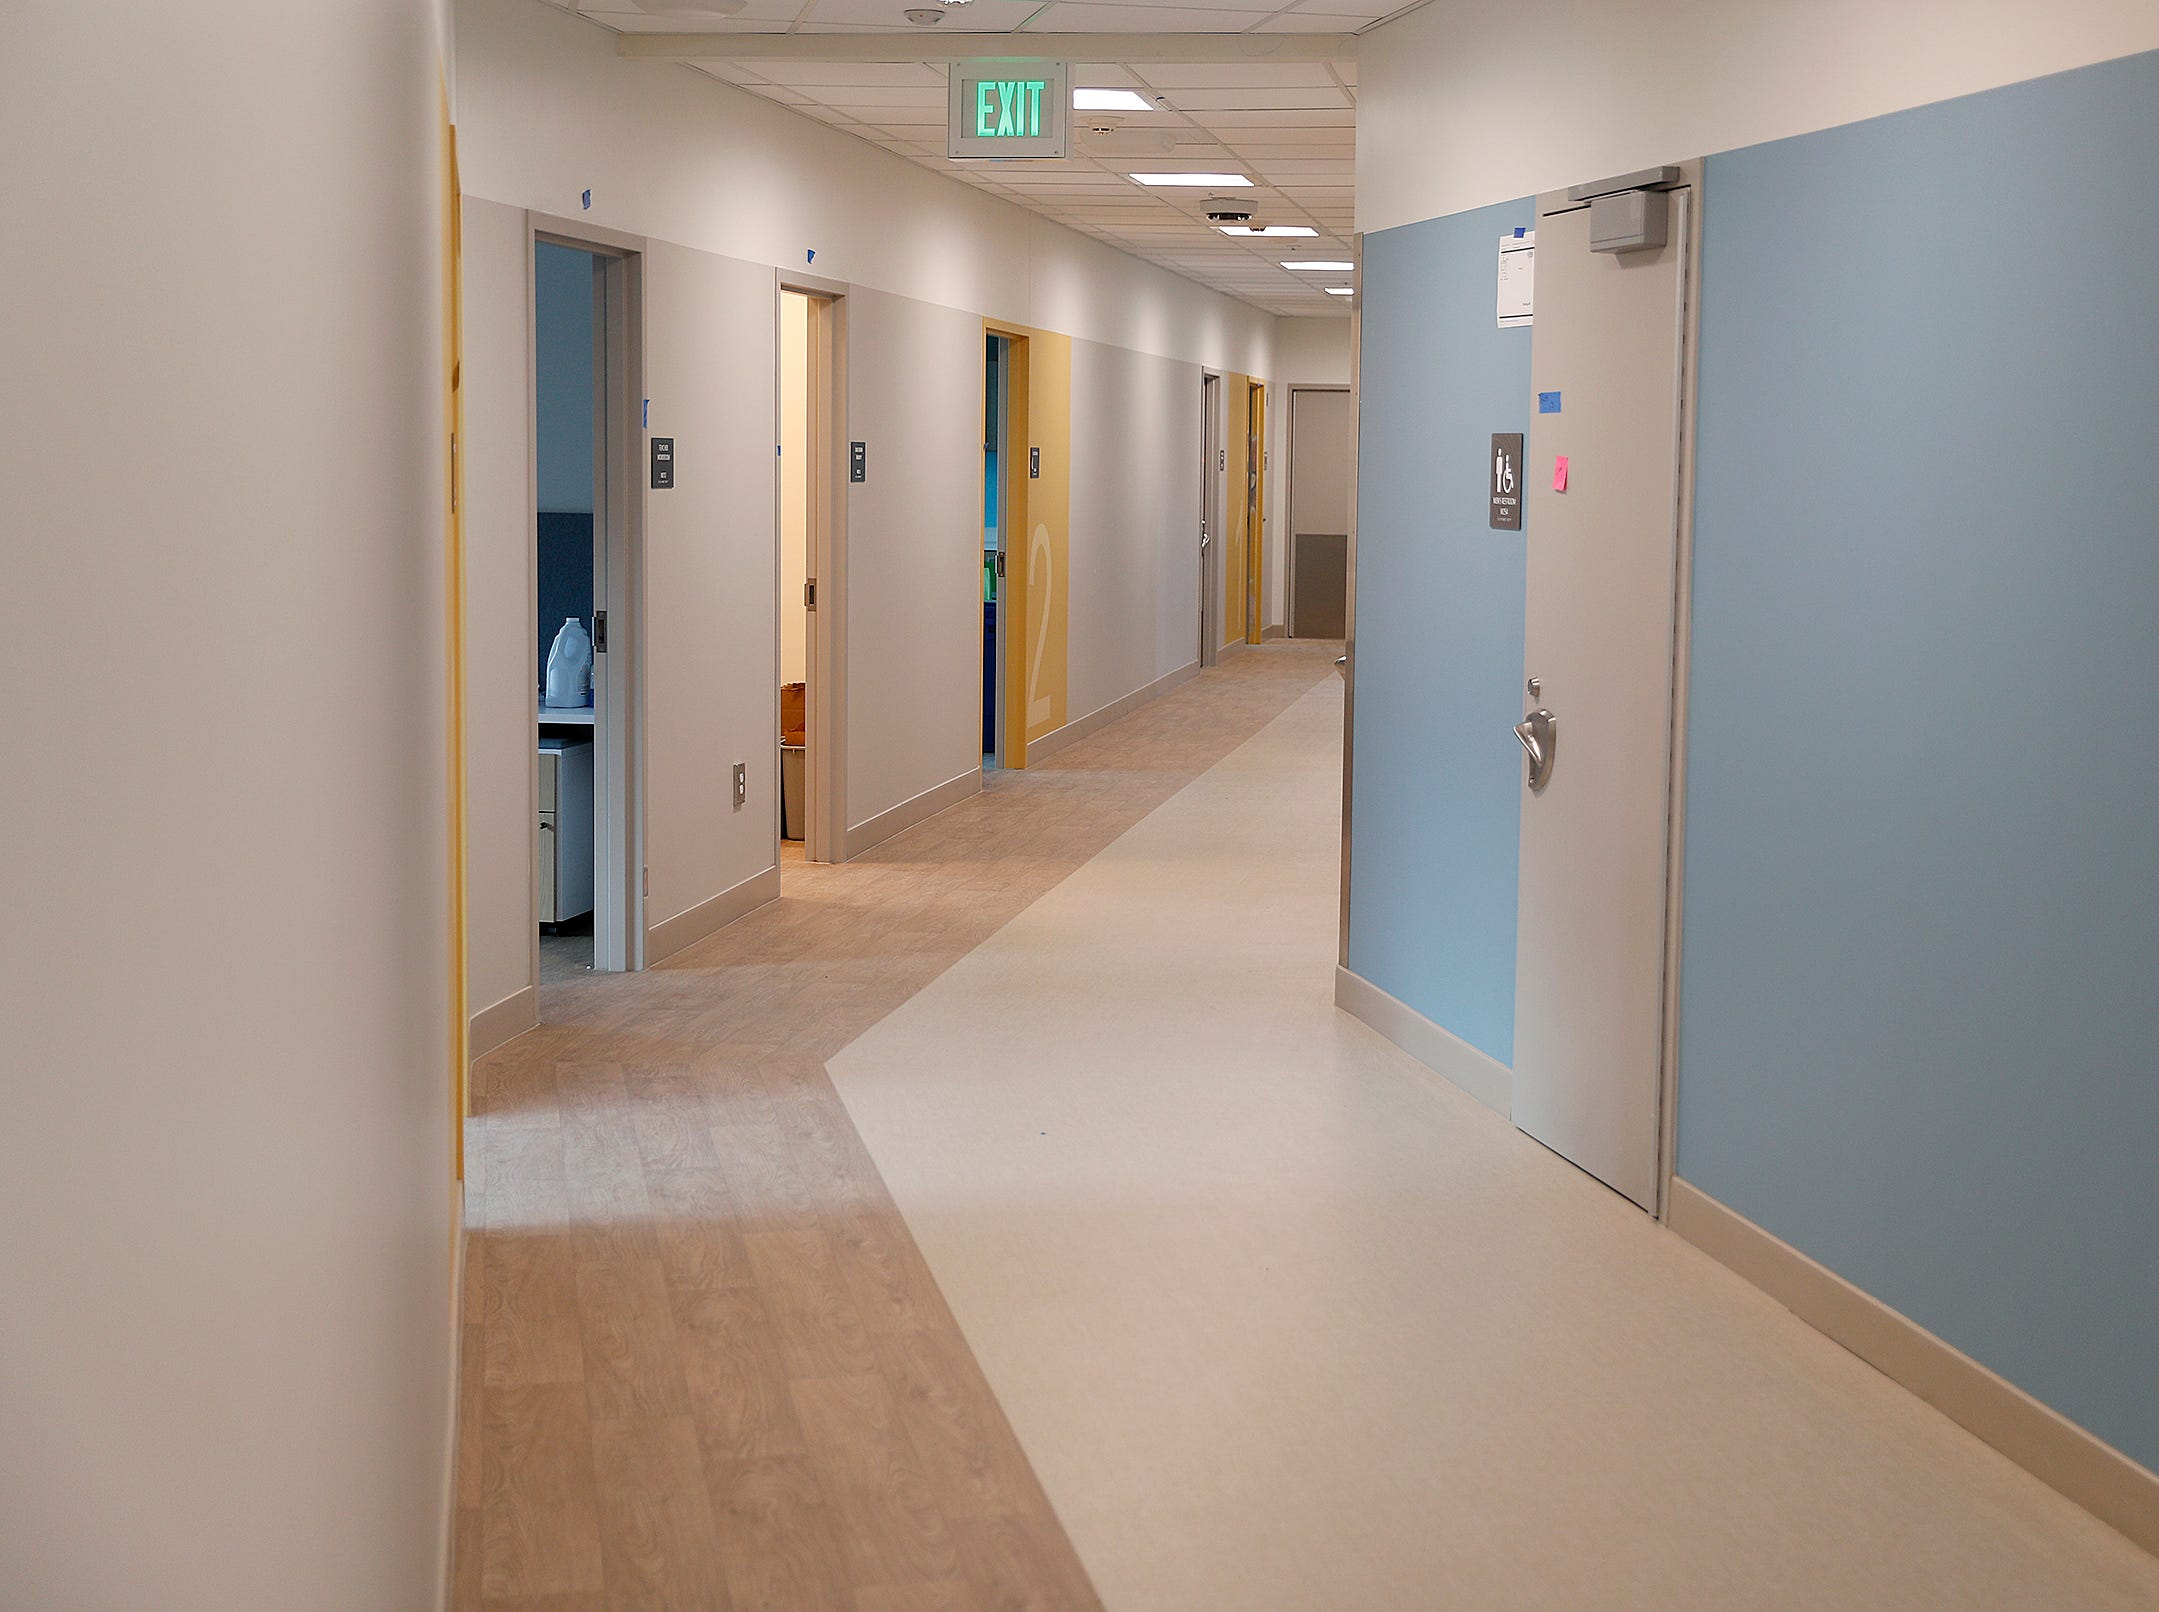 The hallway of the many classrooms in the new NeuroDiagnostic Institute, at 5435 E 16th St., will replace LaRue Carter as the center for mental health care on Wednesday, March 13, 2019.